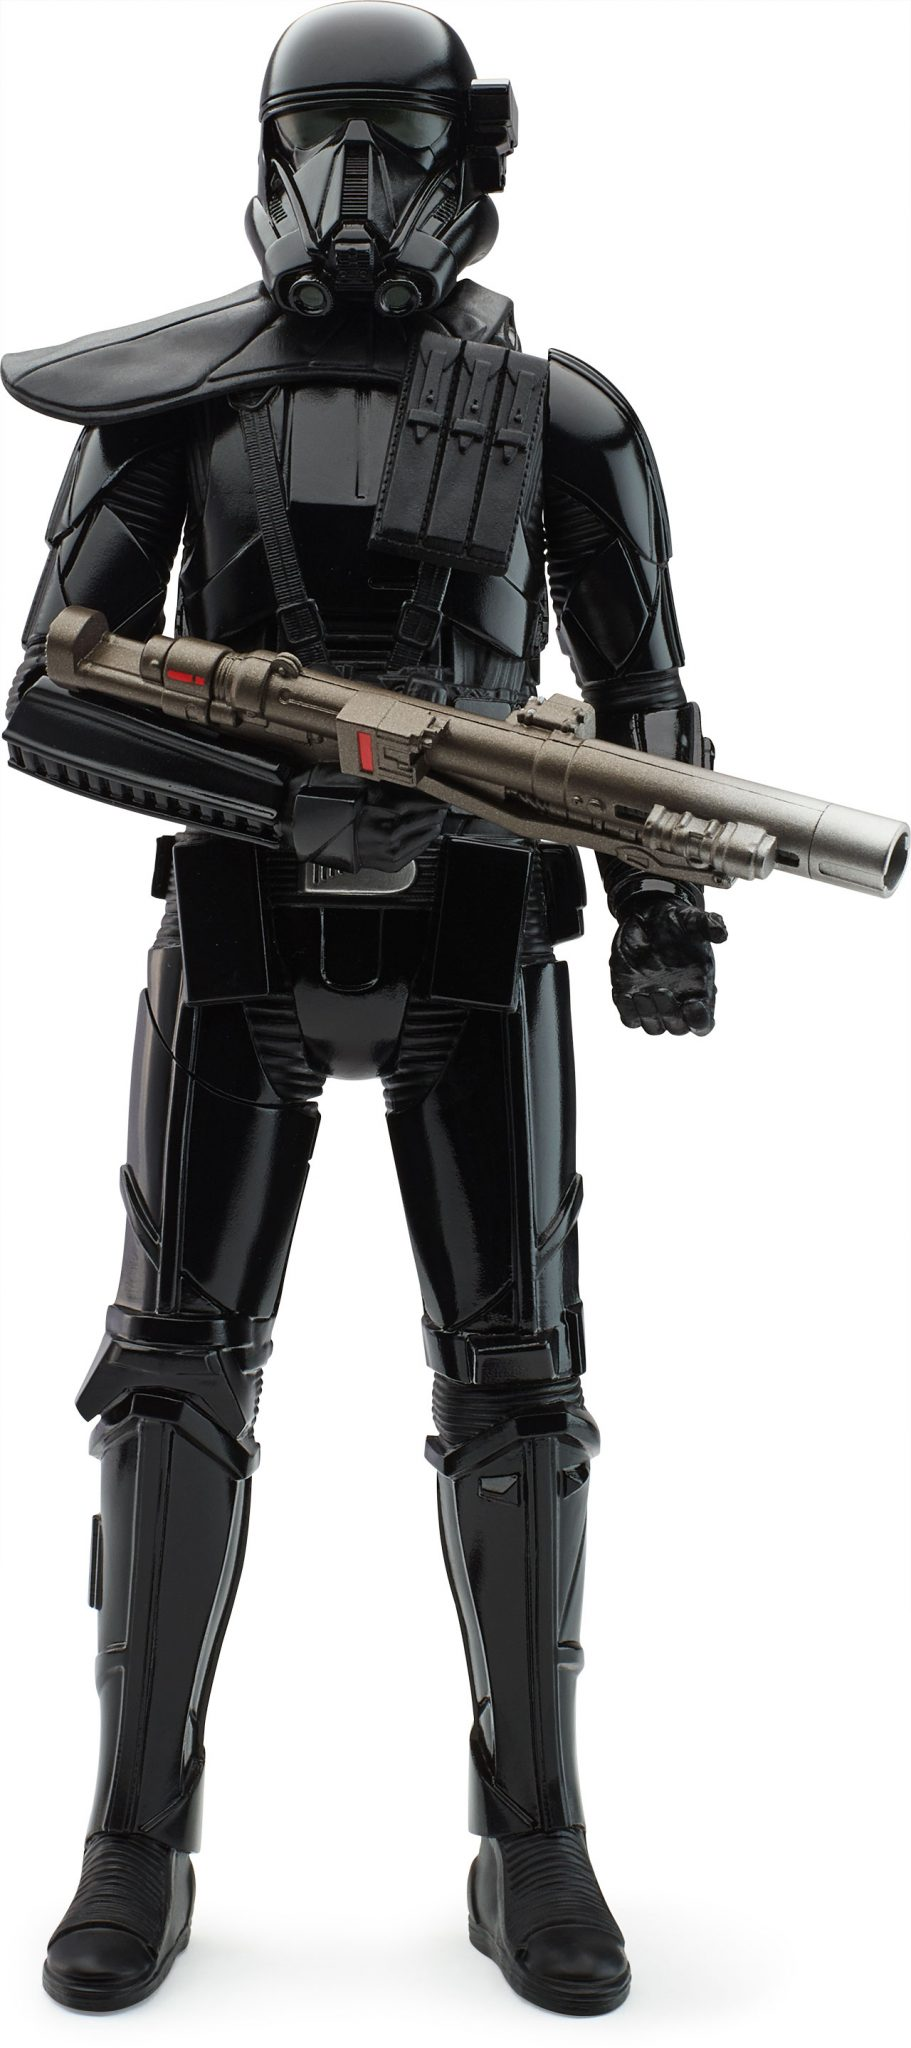 IMPERIAL DEATH TROOPER 12 INCH ELECTRONIC DUEL FIGURE (1)